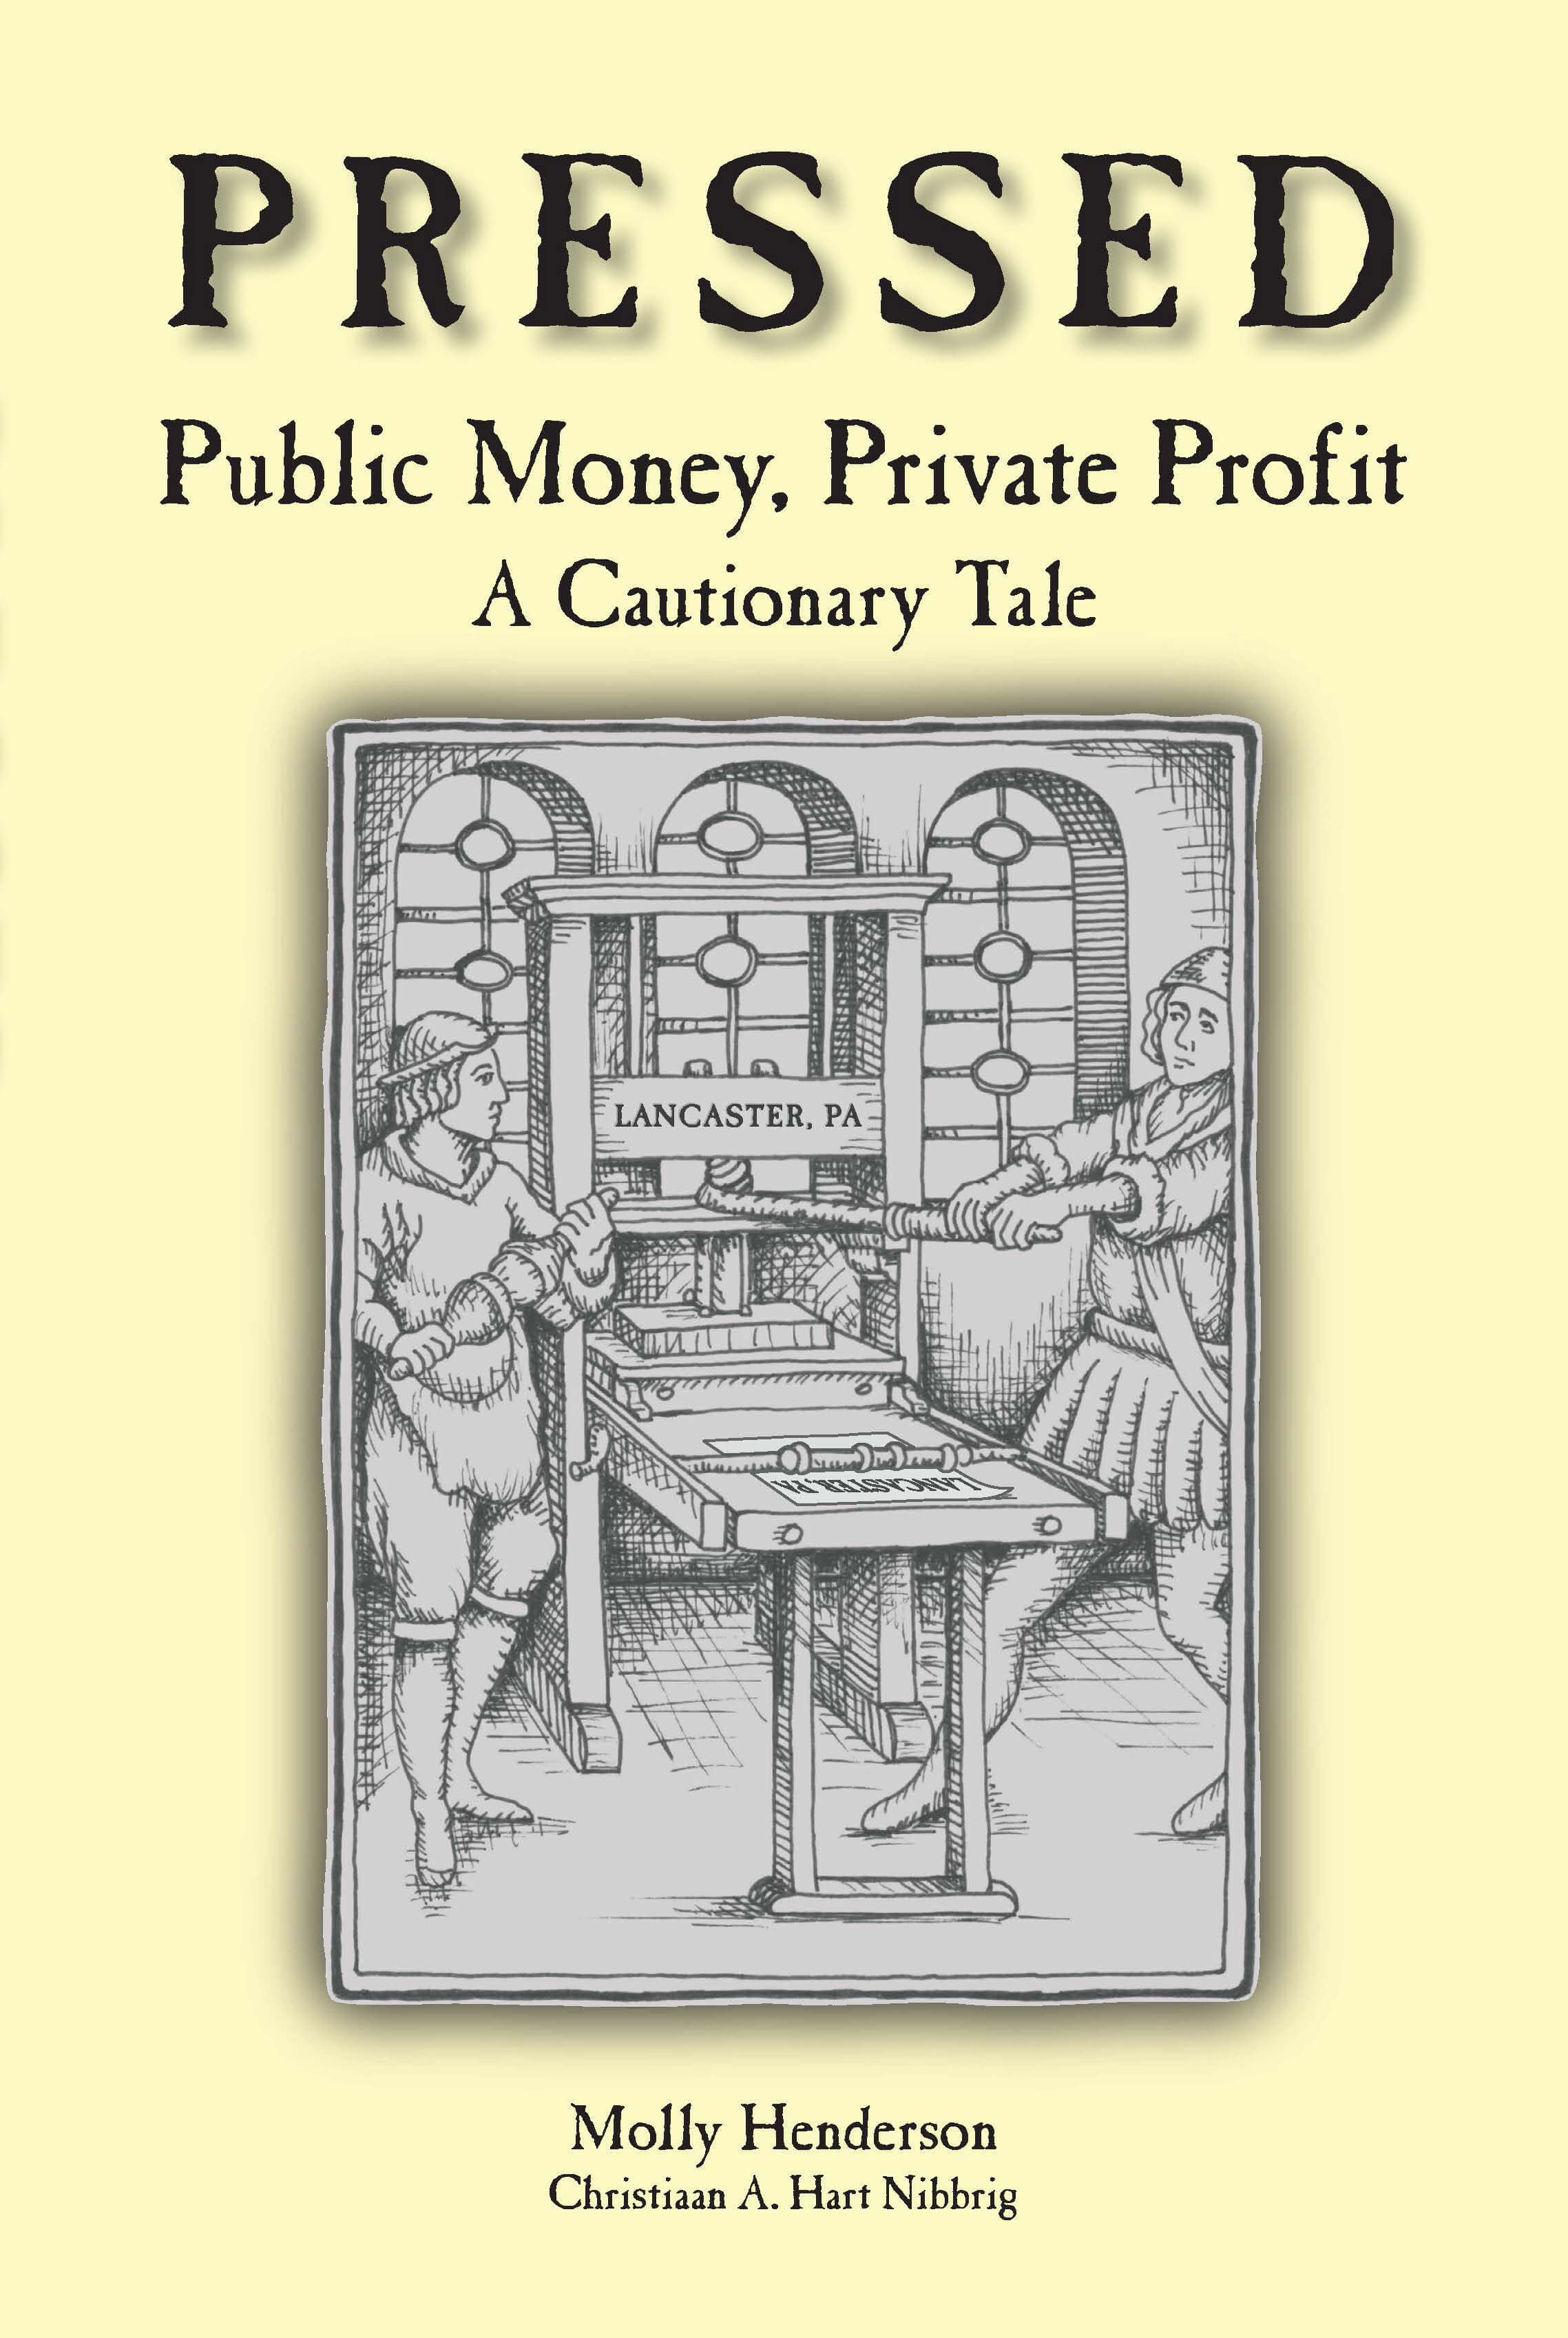 Pressed is a nonfiction book by Molly Henderson about a public private partnership and who benefited from it.